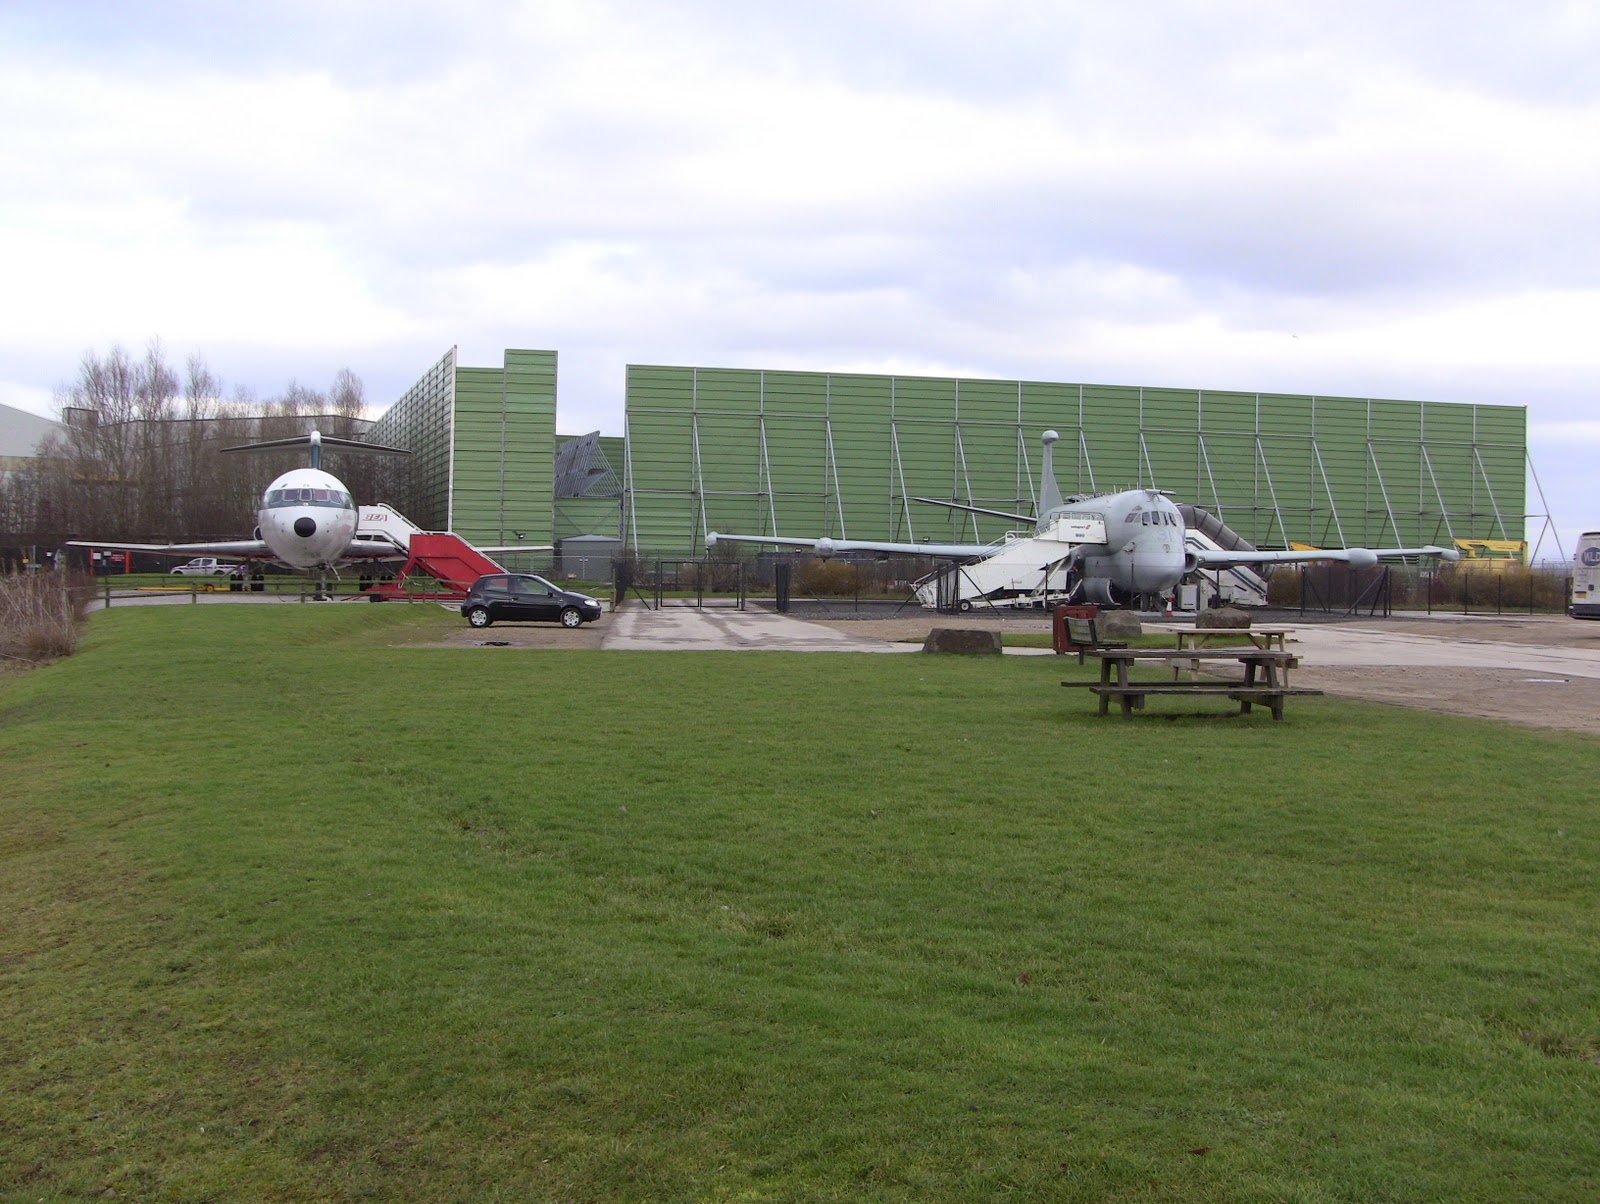 Moss Travel Photography Manchester Airport Runway Visitor Park